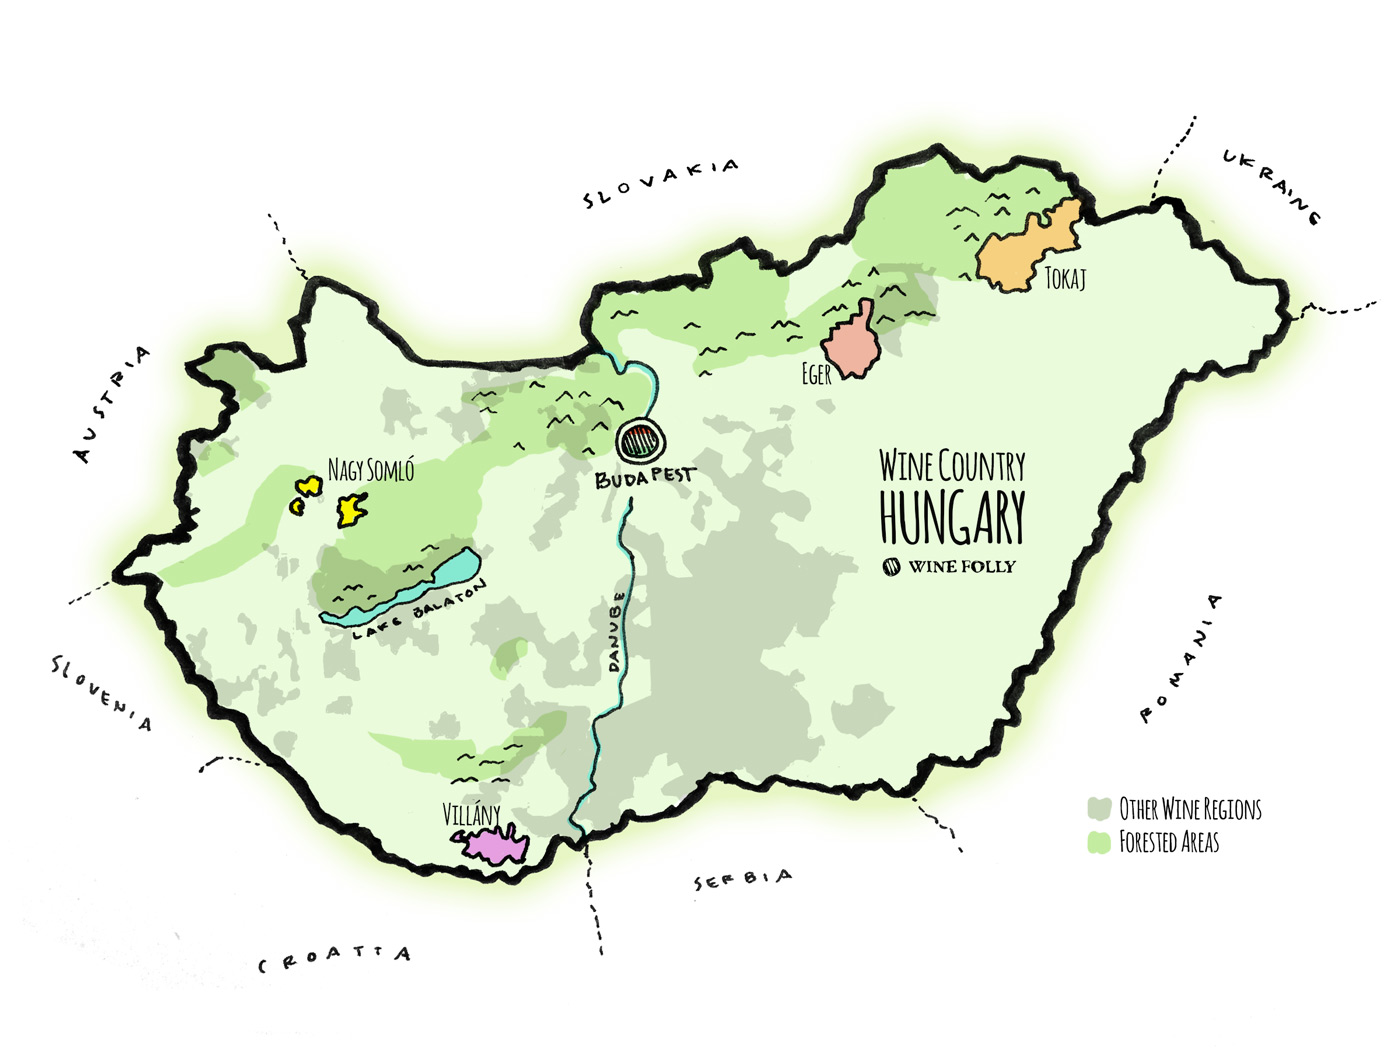 Hungarian Wines for the win - by Athena BochanisWine Folly